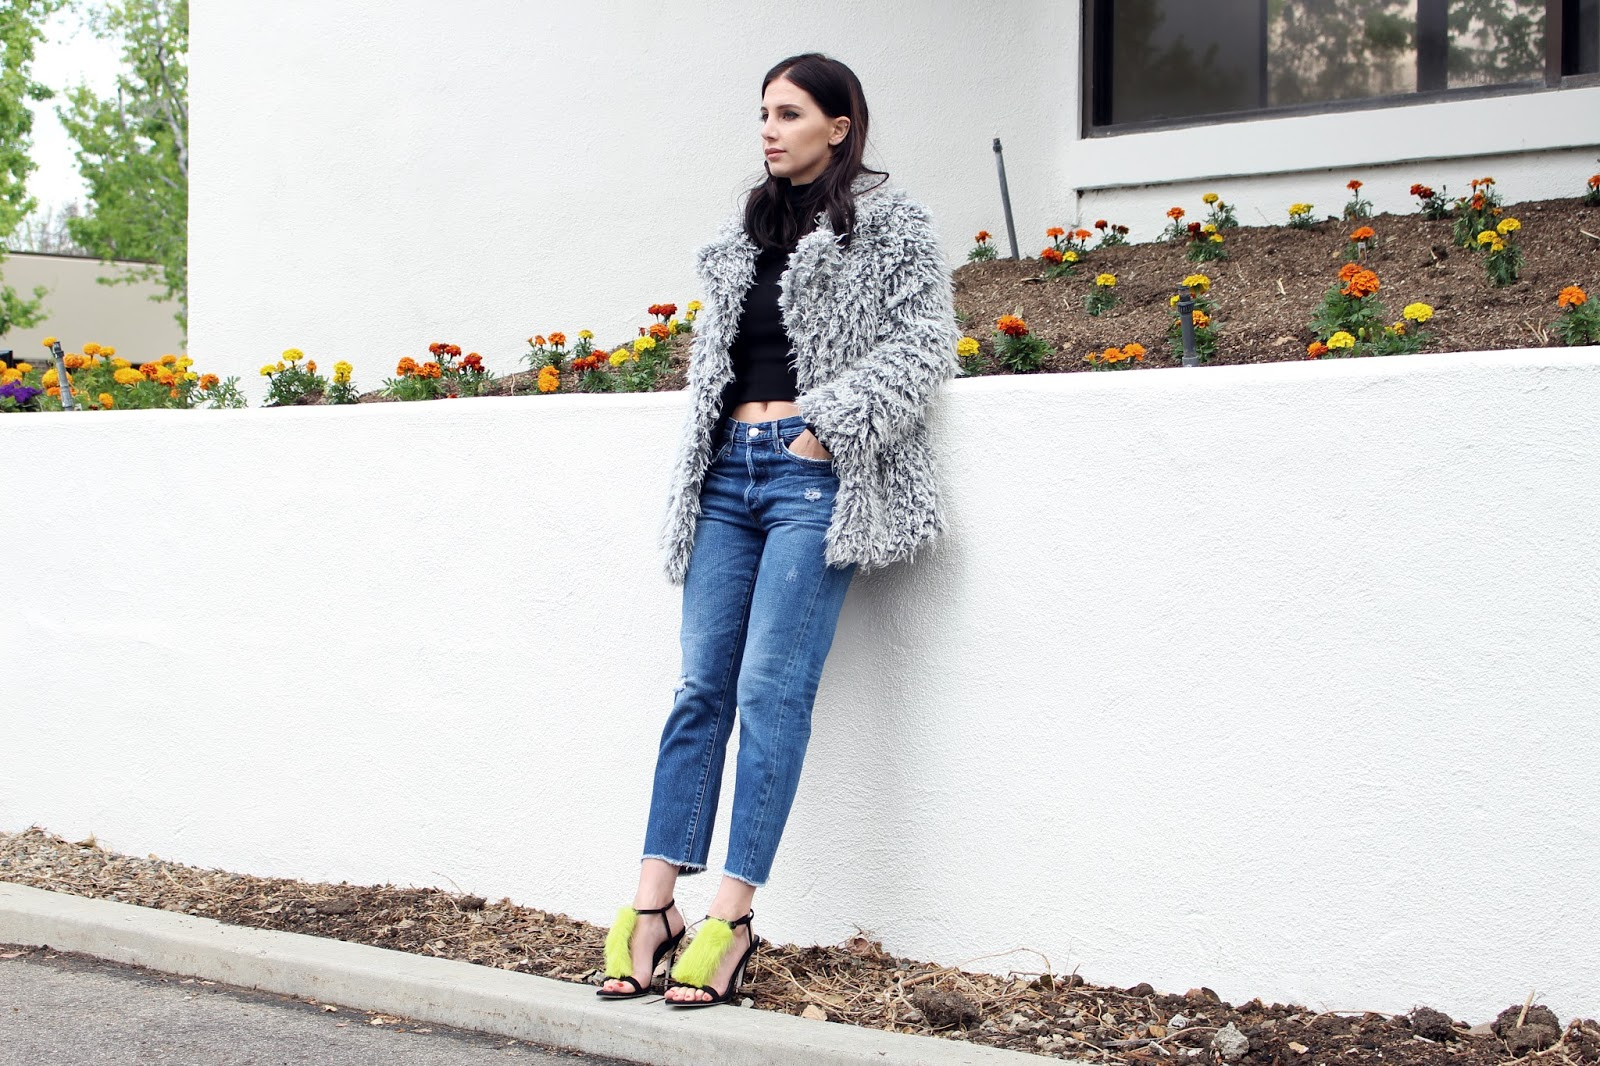 fur shoes, fur heels, vintage jeans, levis 501, faux fur jacket, fur coat, spring 2016, spring trends, street style, tourdestfu, turtleneck, layered outfit